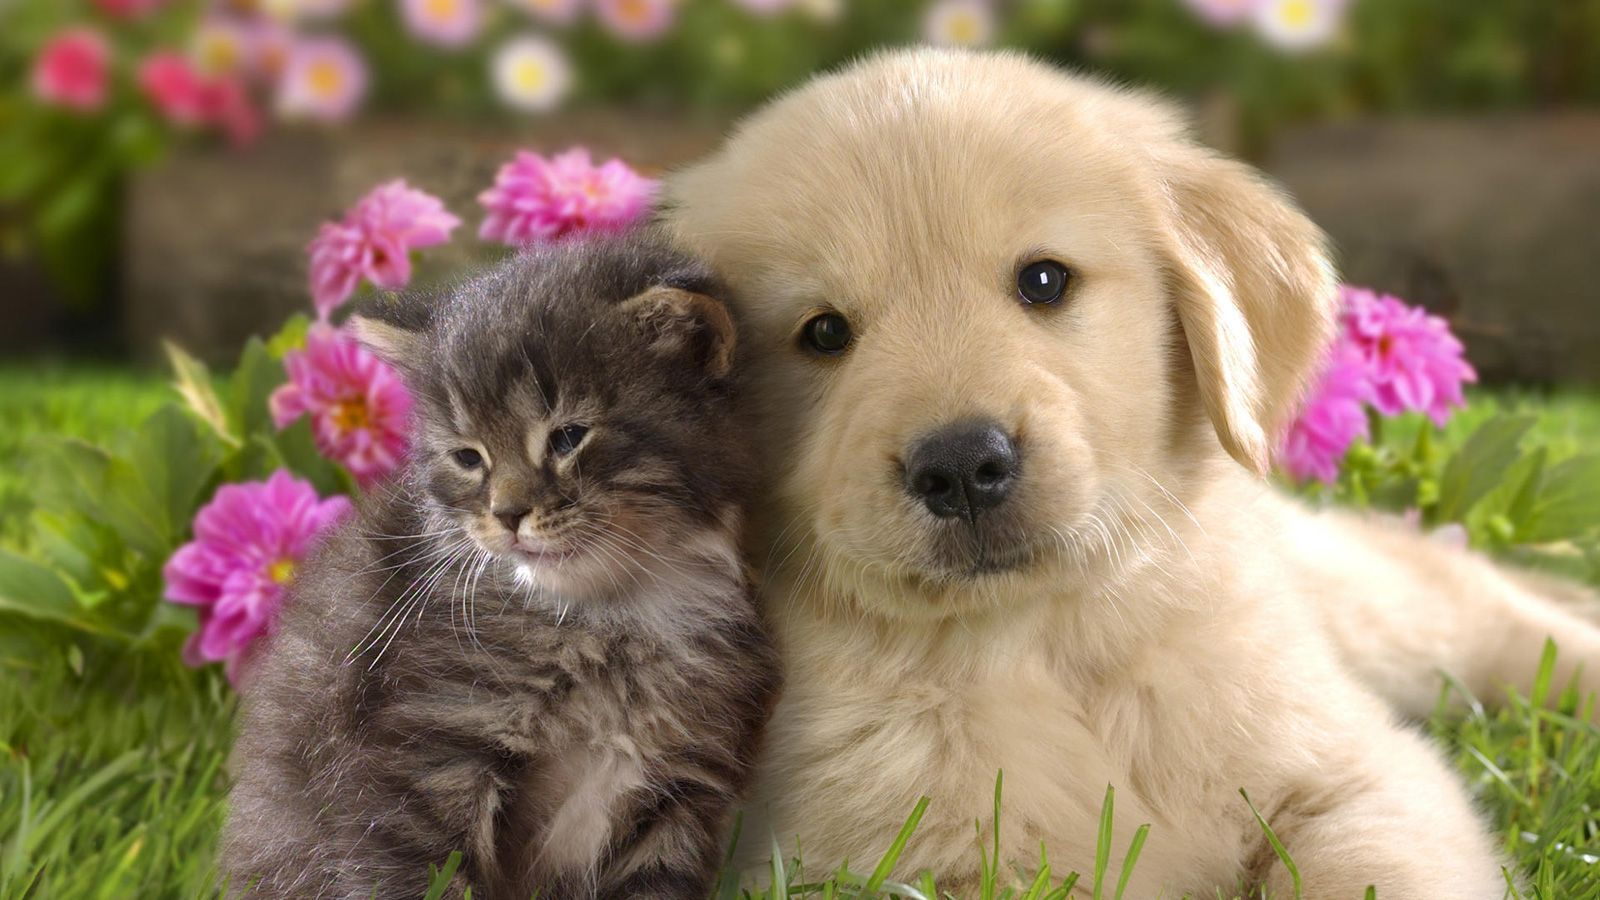 animal cute and funny wallpaper free download | free wallpapers and